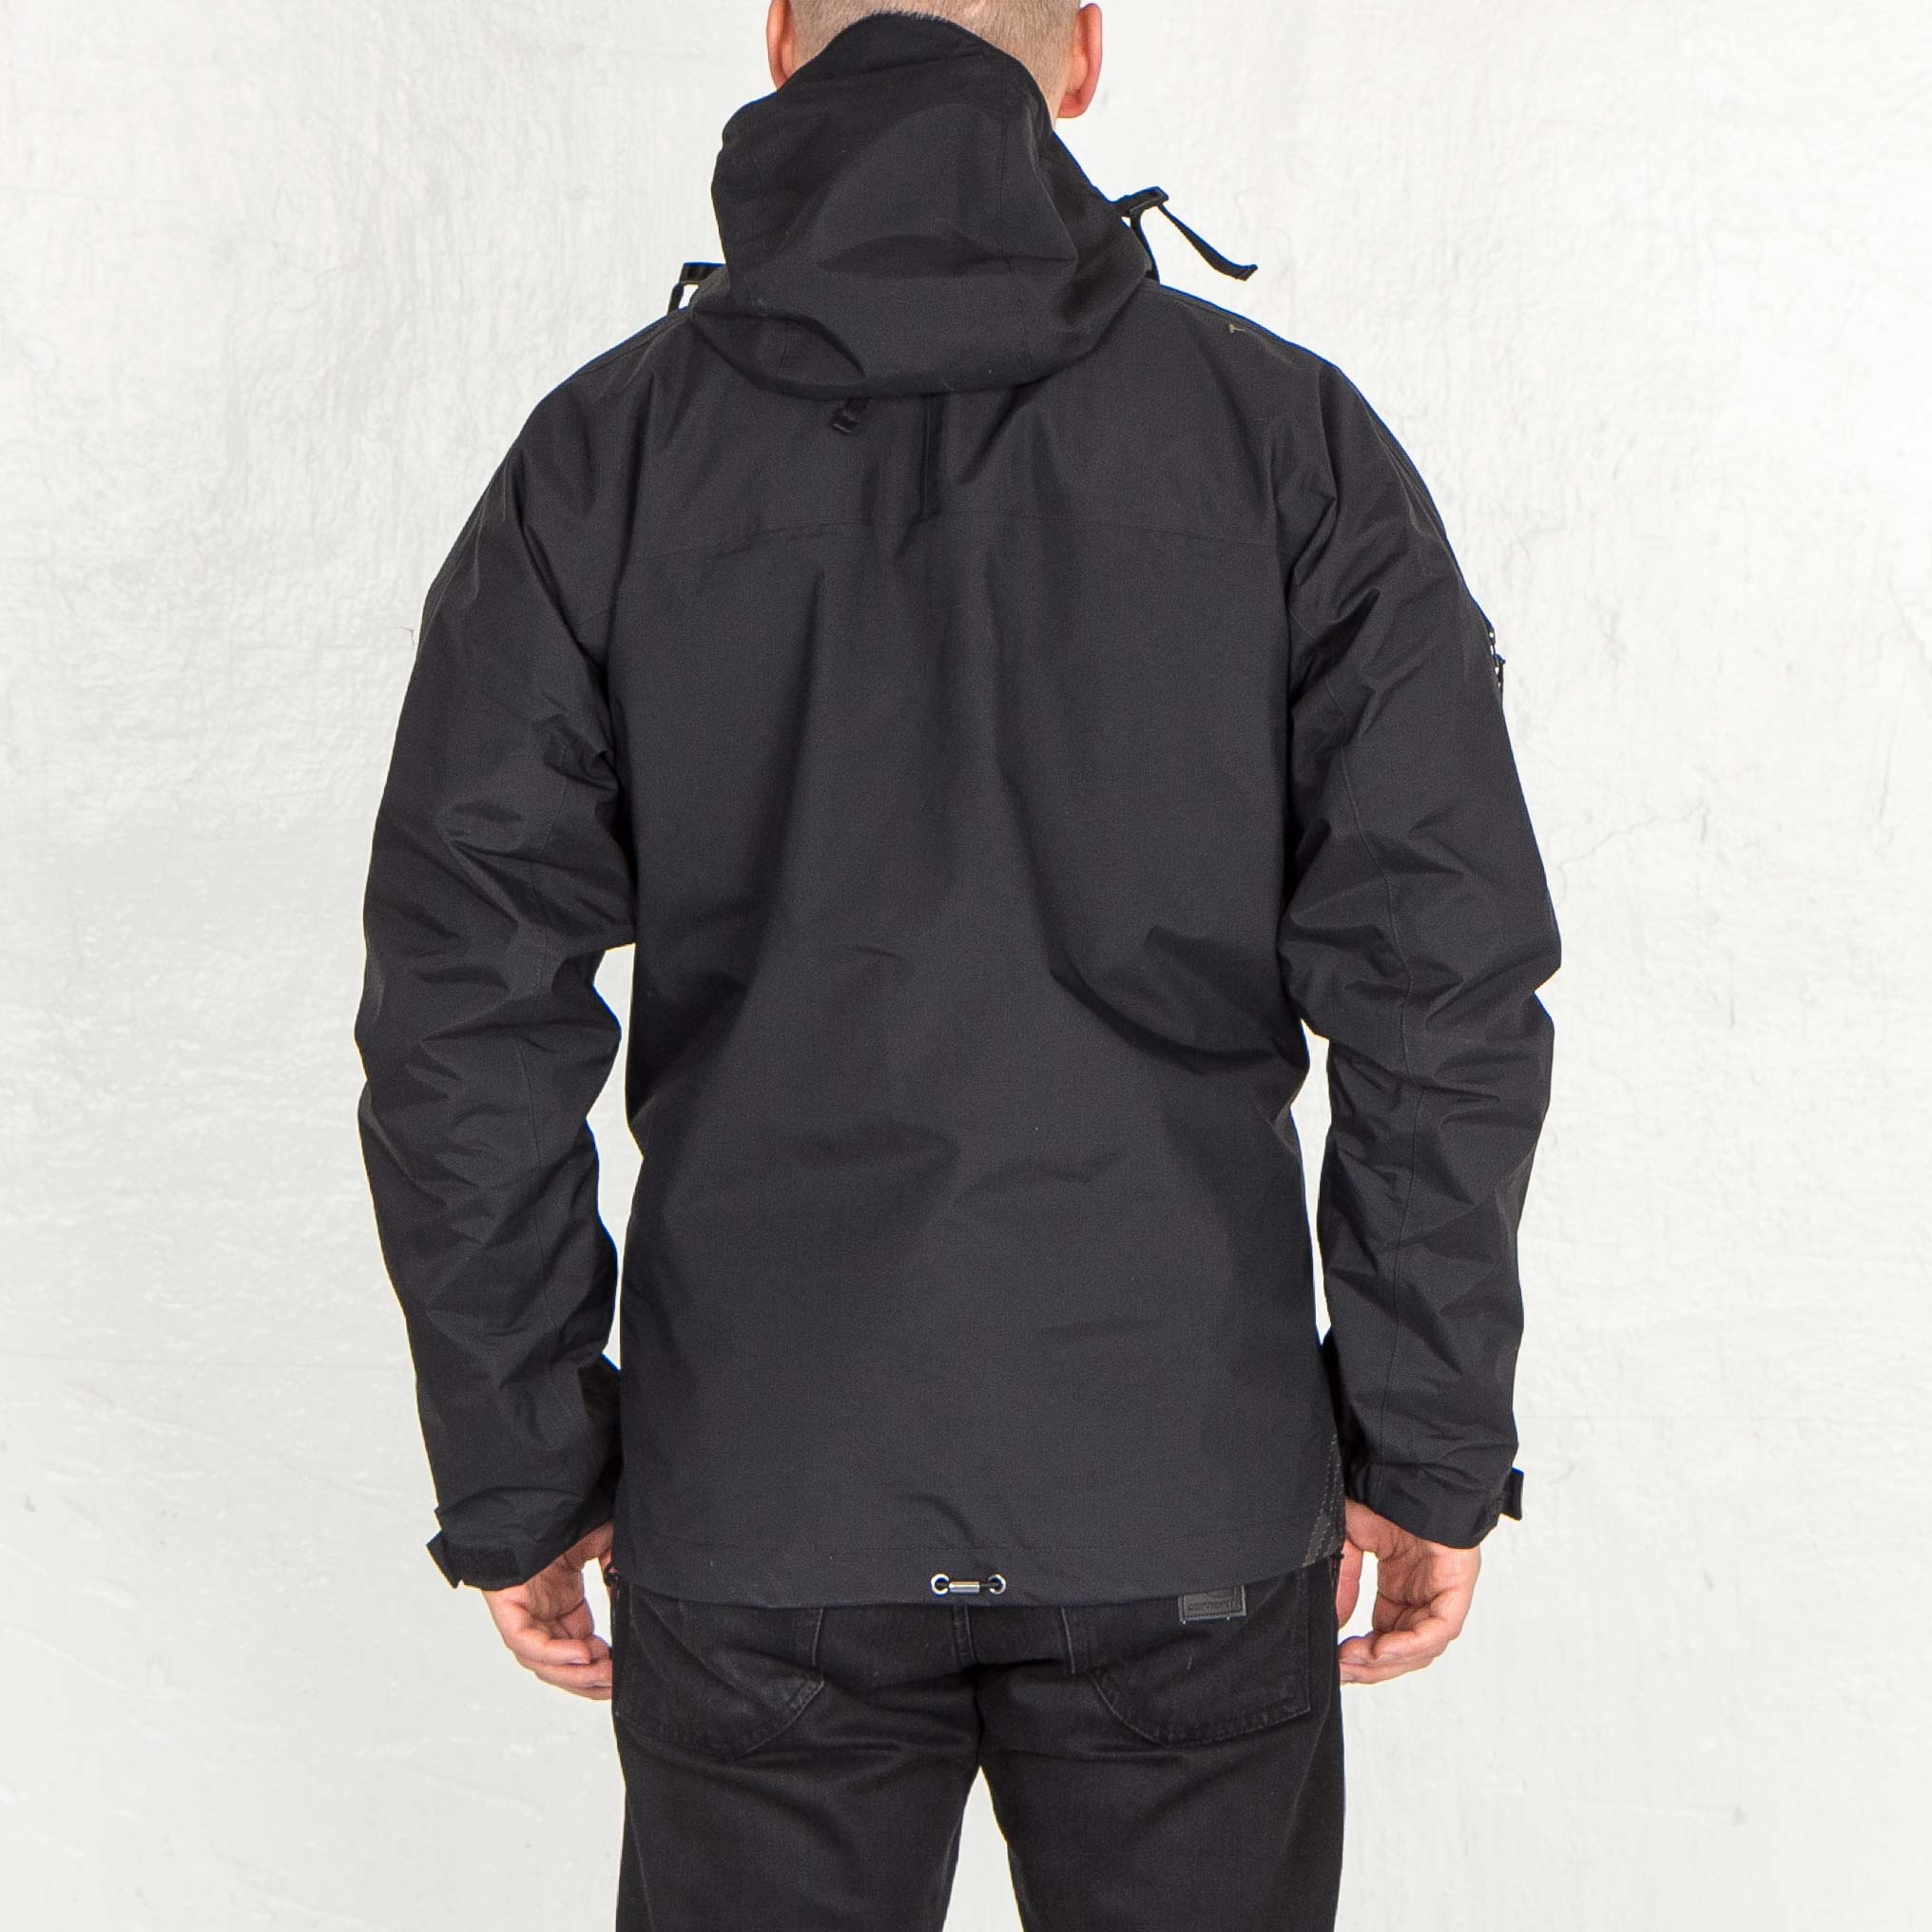 adidas 2 in 1 Jacket AthL Ao4409 Sneakersnstuff